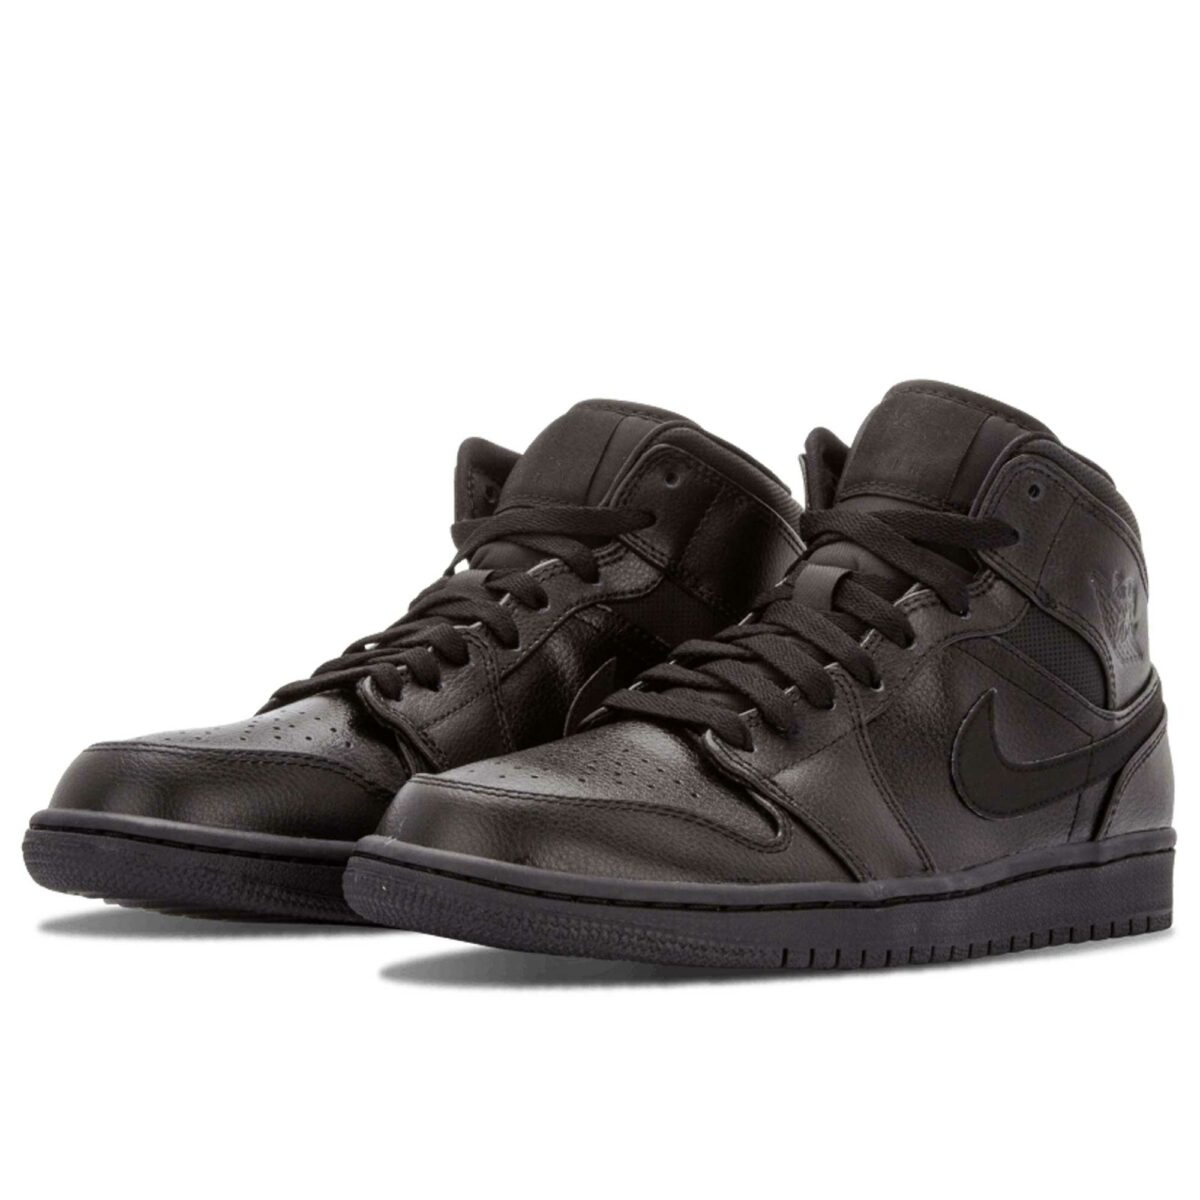 nike air Jordan 1 retro high og all black 554724_030 купить